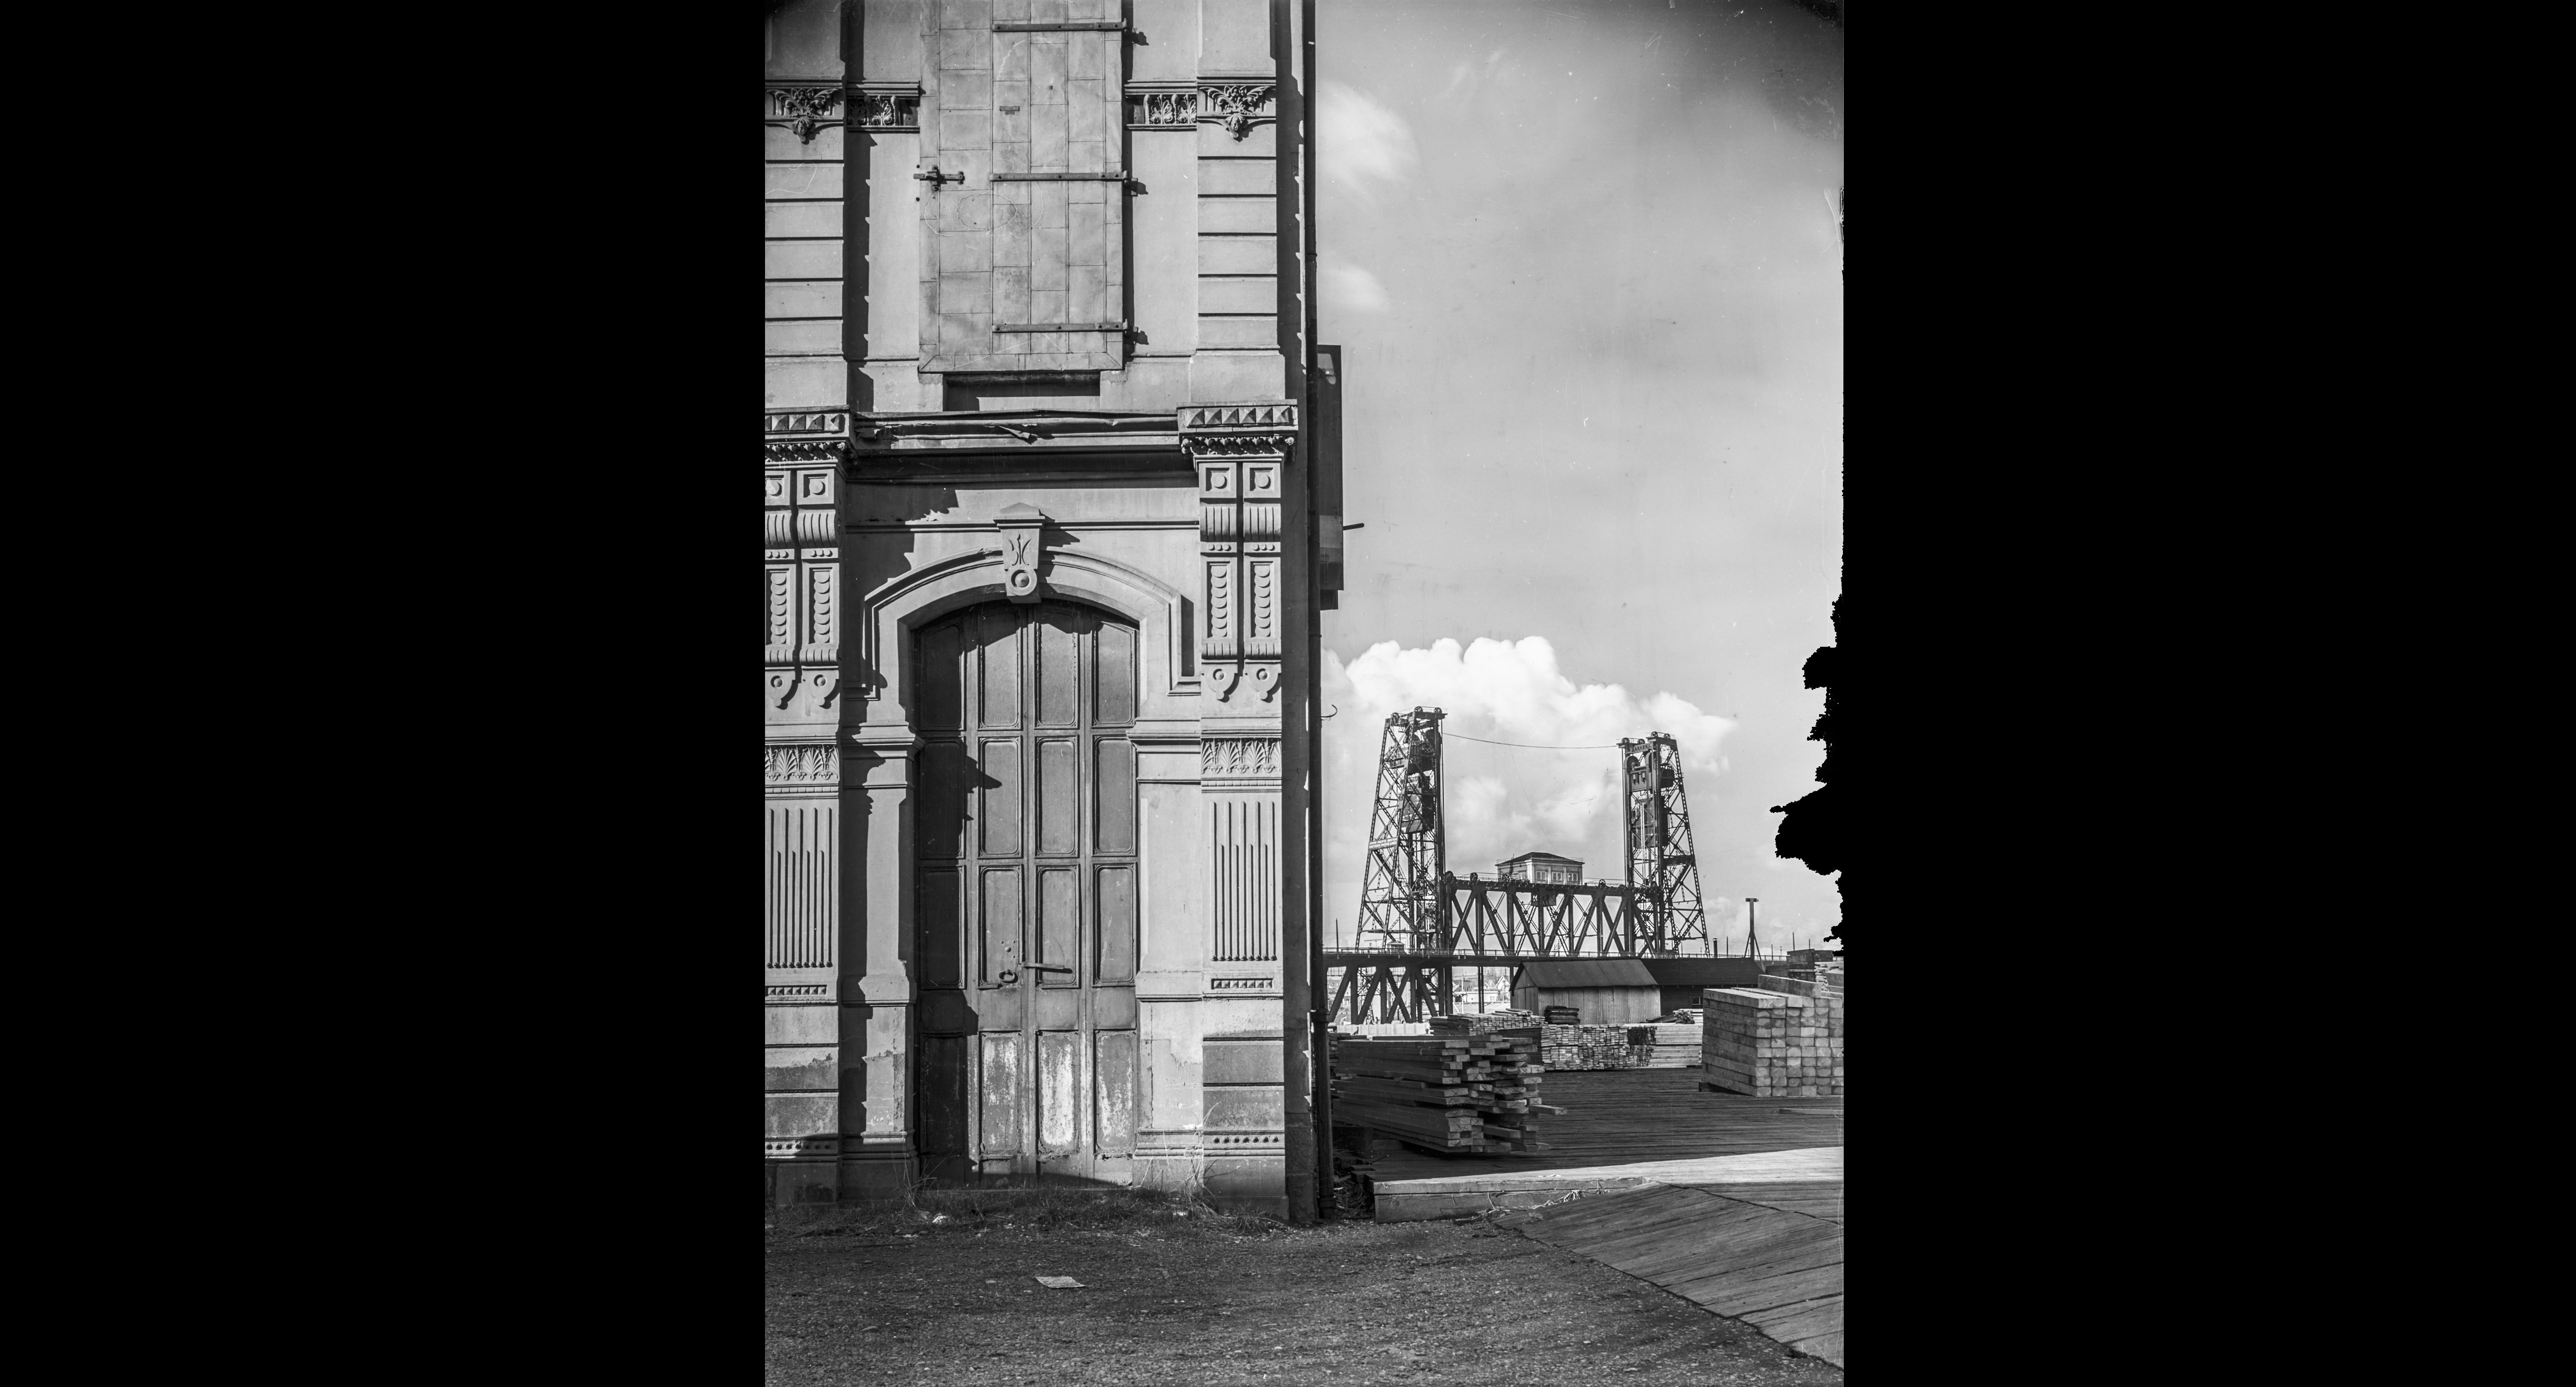 Southeast corner of Allen & Lewis Block, with Steel Bridge, March 8, 1939